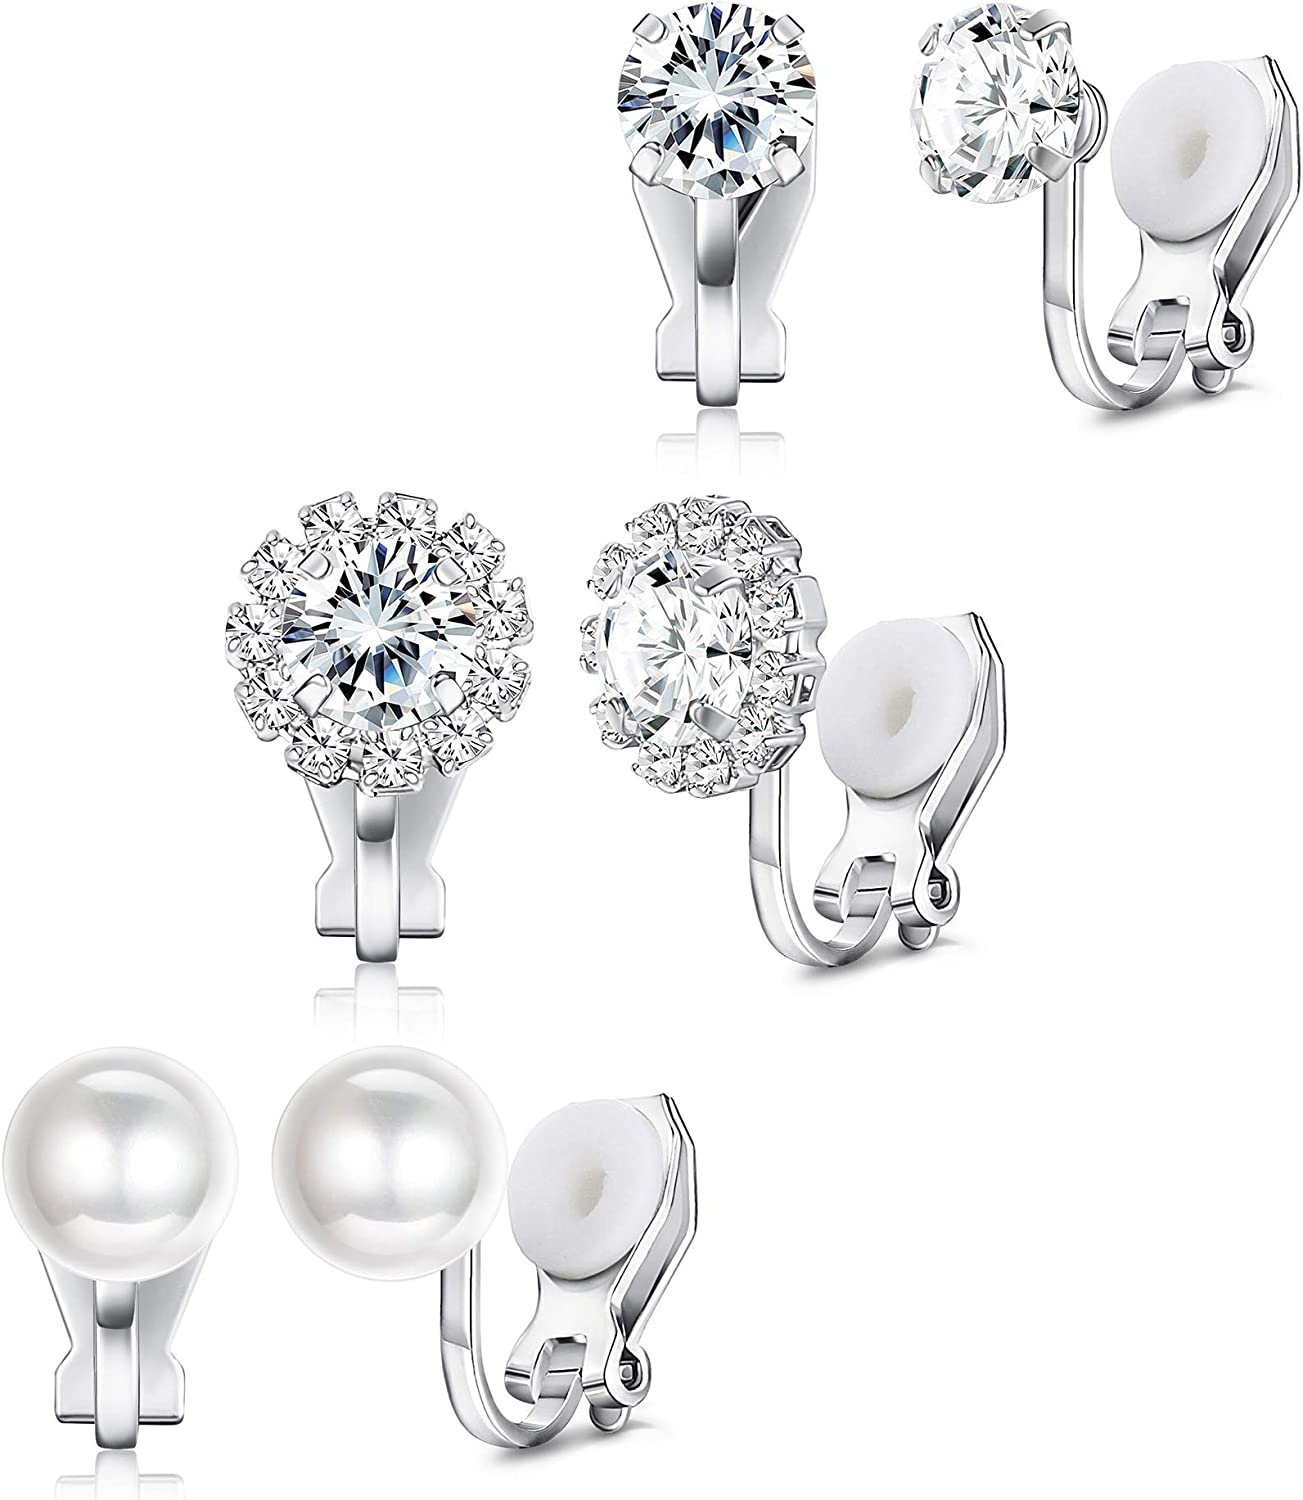 Florideco 3Pairs 14K White Gold Plated Cubic Zirconia Clip On Earrings for Women Halo CZ Pearl Non Pierced Stud Earrings Ear Clip Set